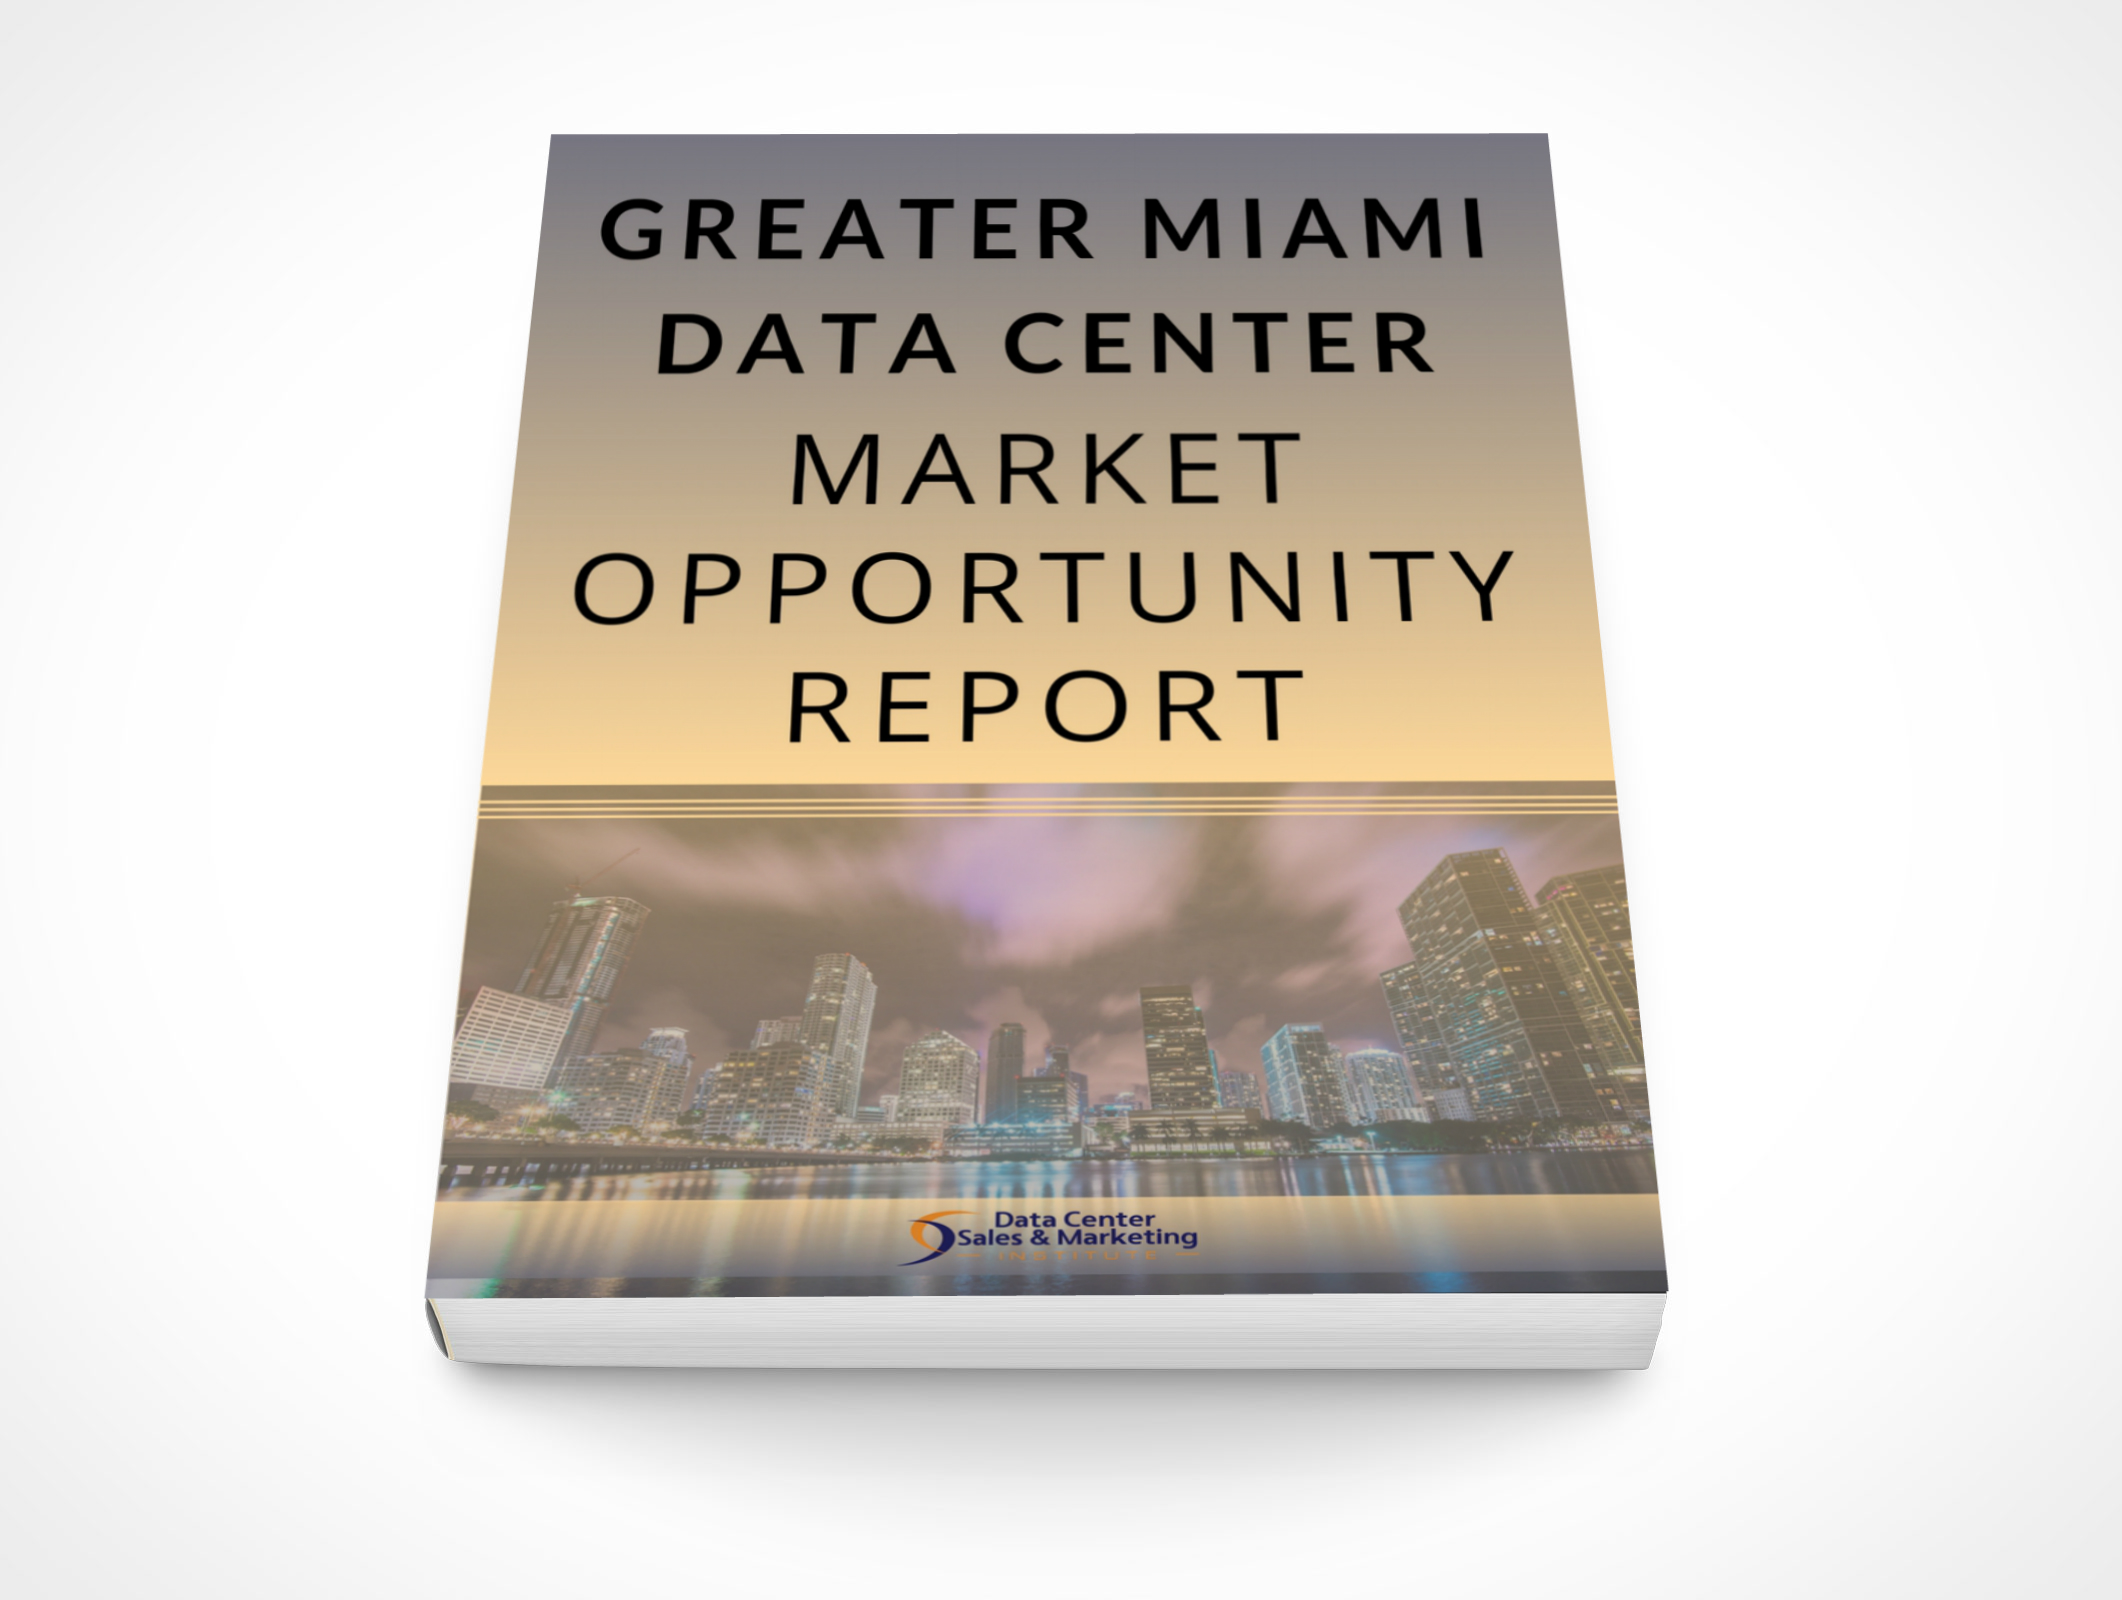 Greater Miami Data Center Market Opportunity Report - Book Cover - 3D (1).jpg